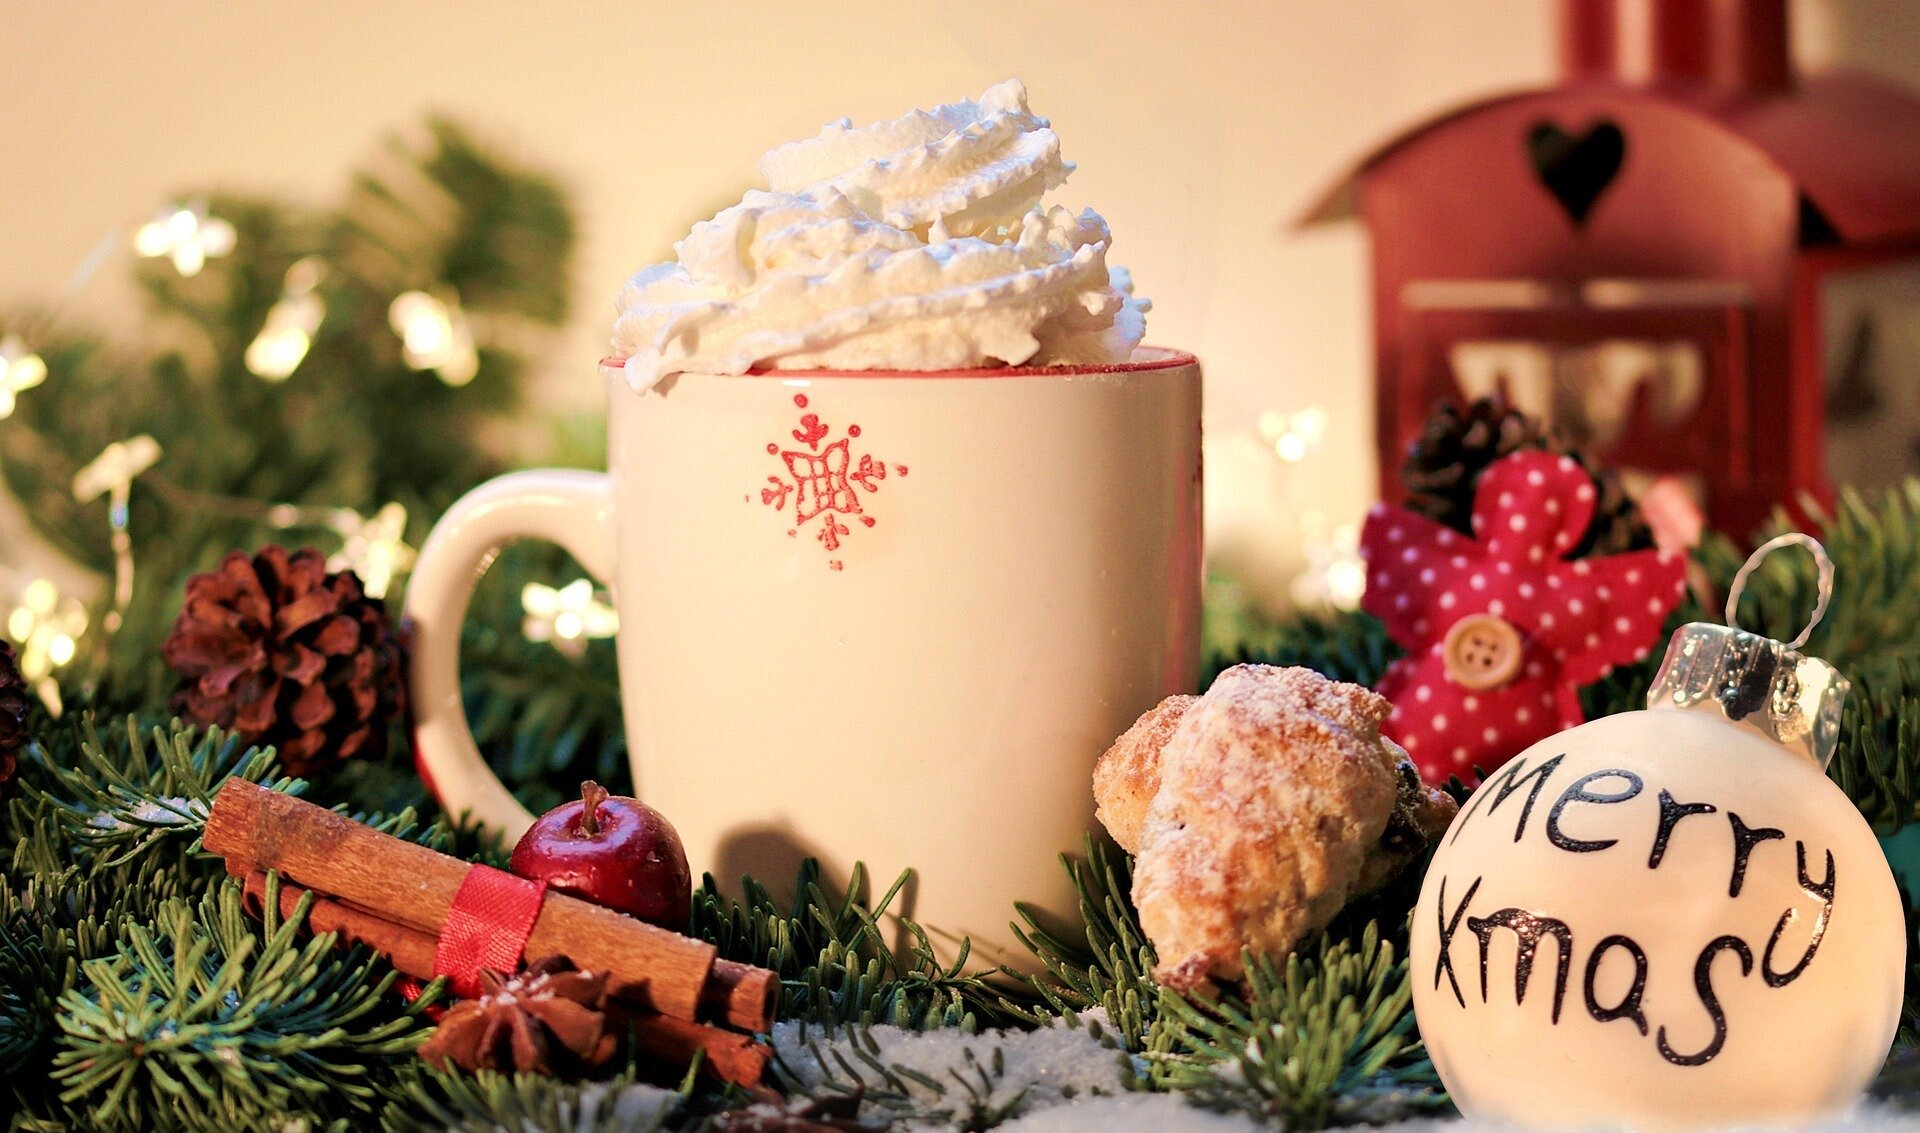 A perfect holiday treat on a cold day!